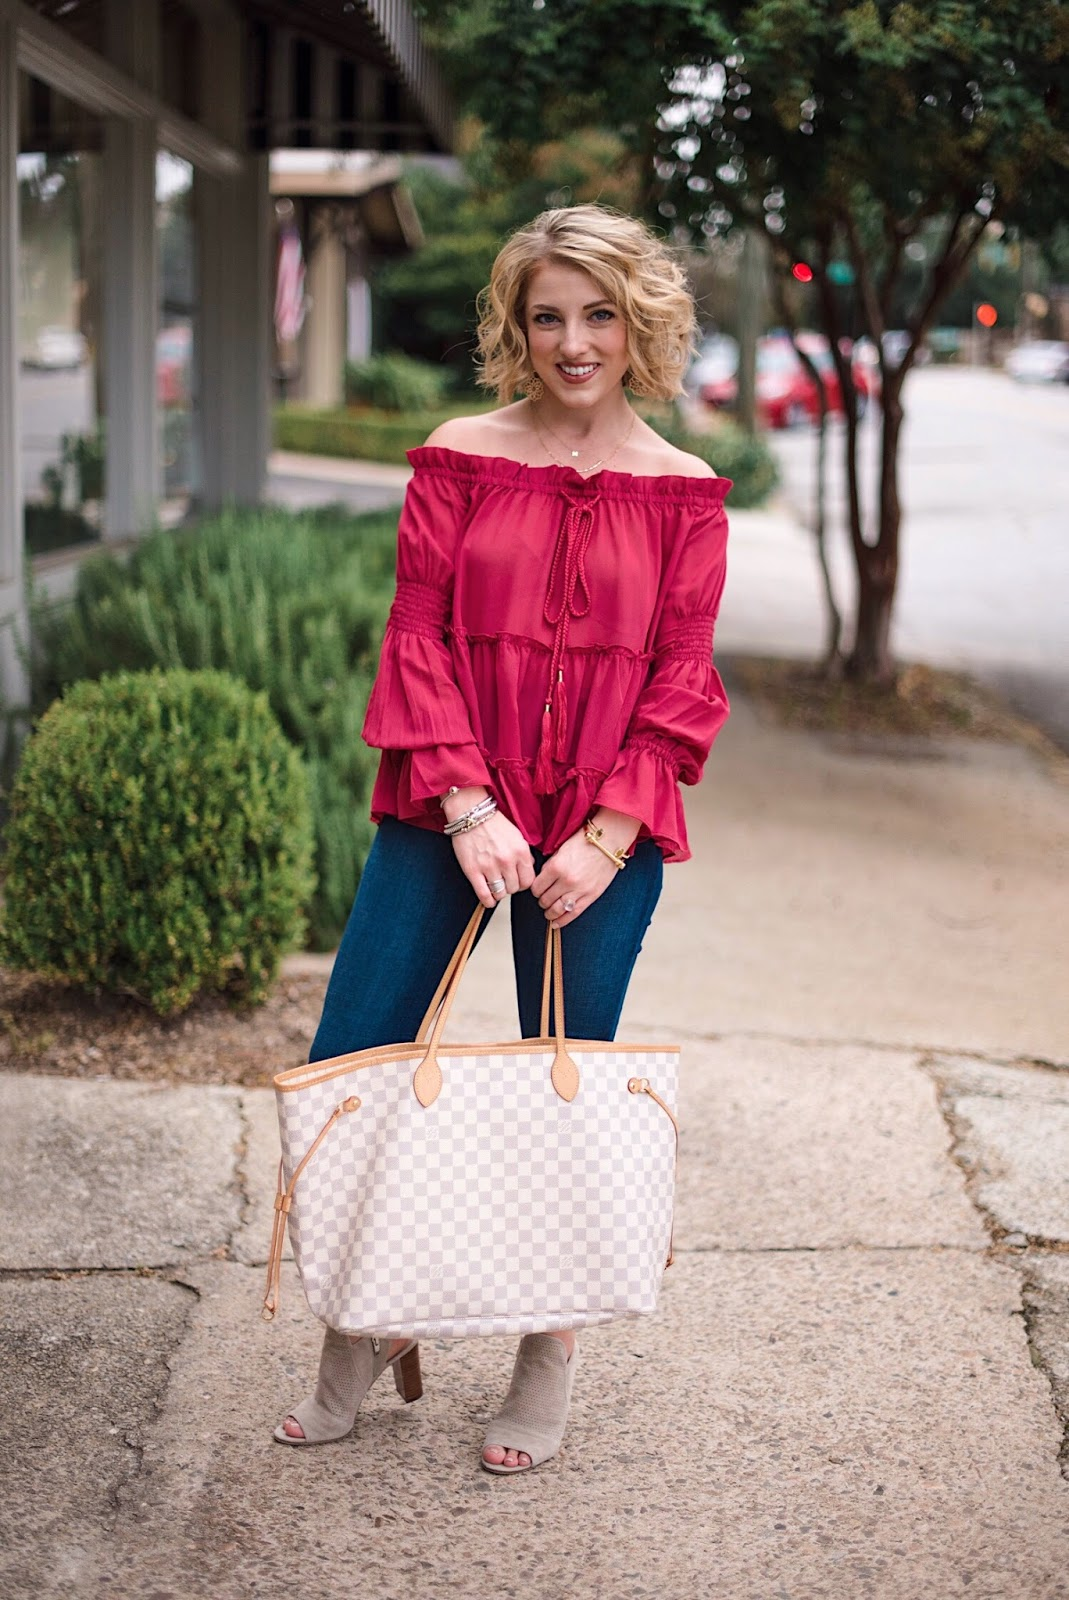 Transitioning to Fall Look - Something Delightful Blog